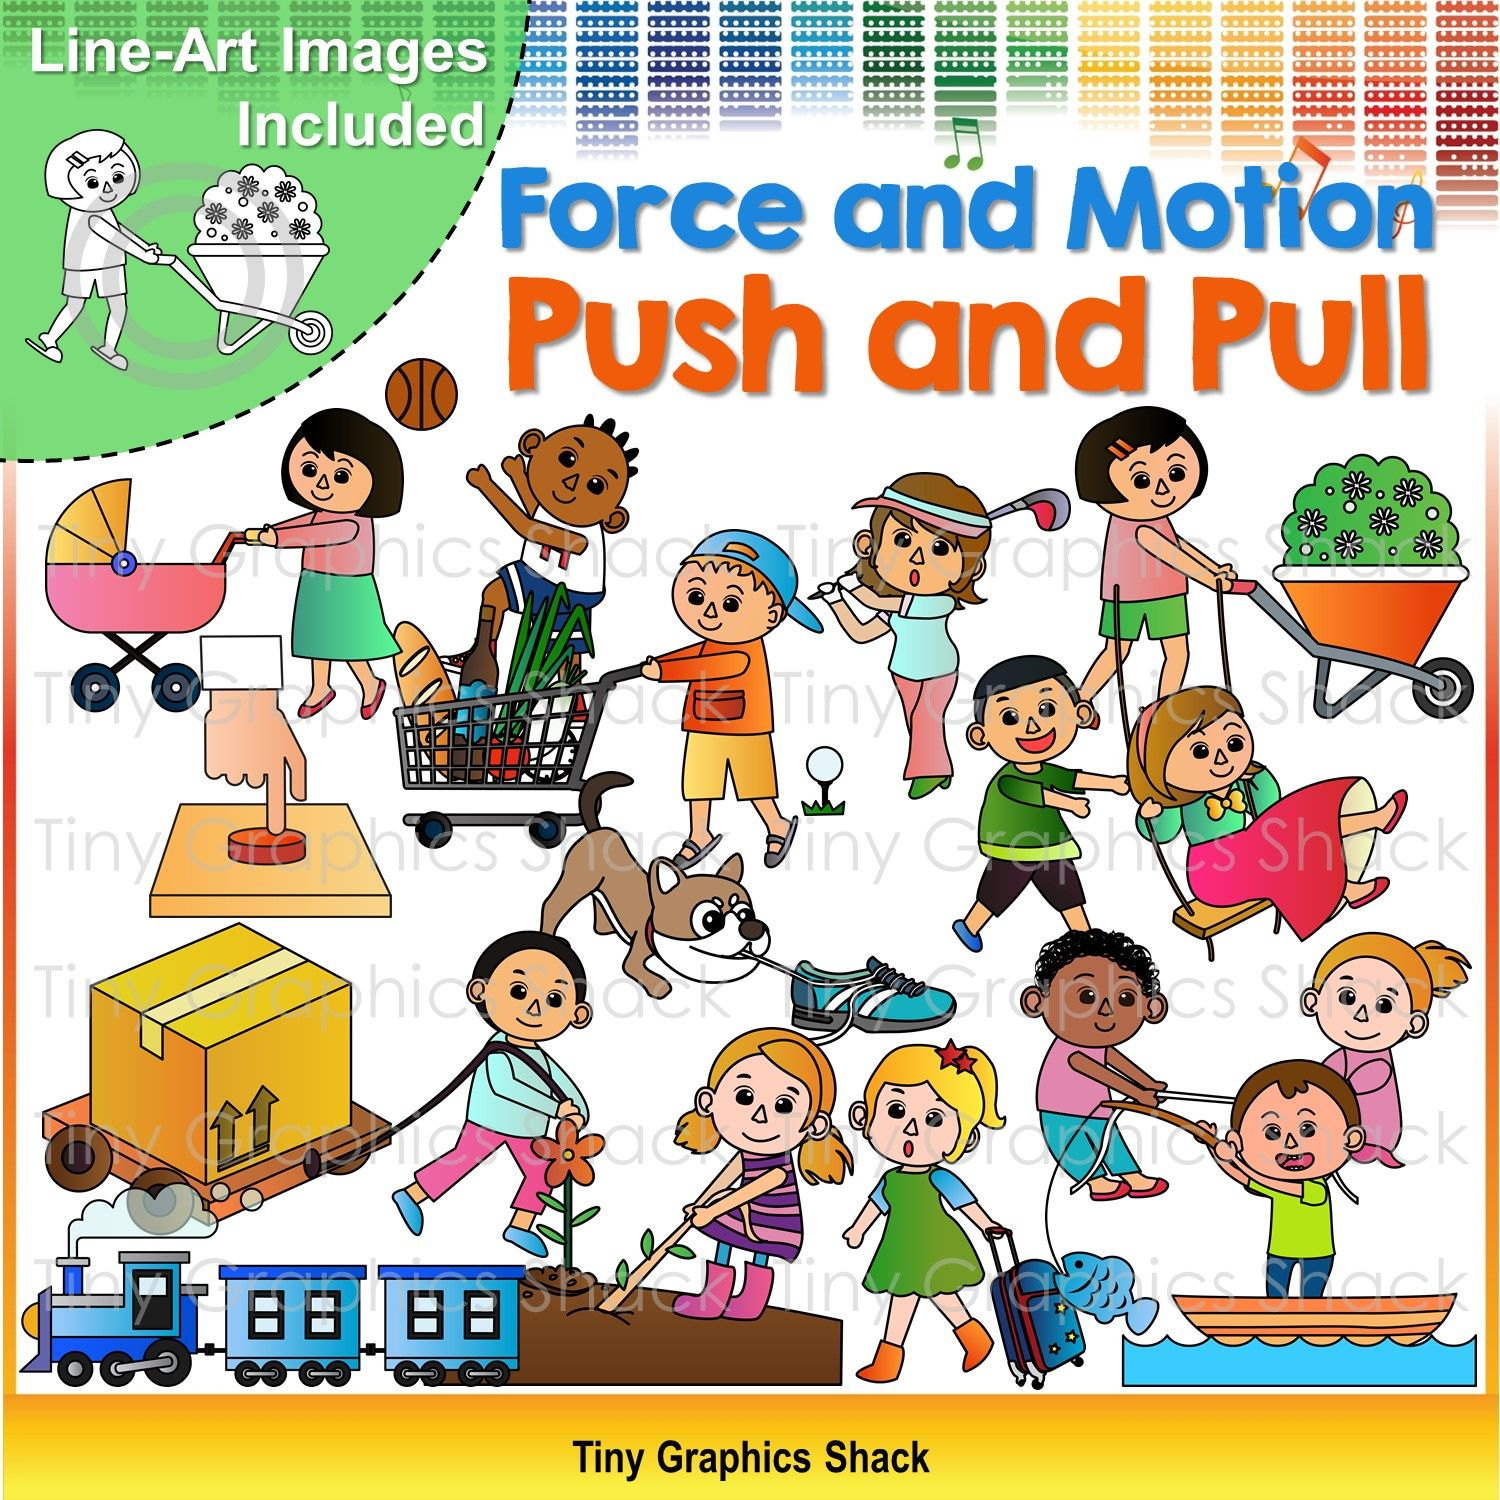 Force And Motion Push And Pull Clip Art Force And Motion Pushes And Pulls Clip Art [ 1500 x 1500 Pixel ]